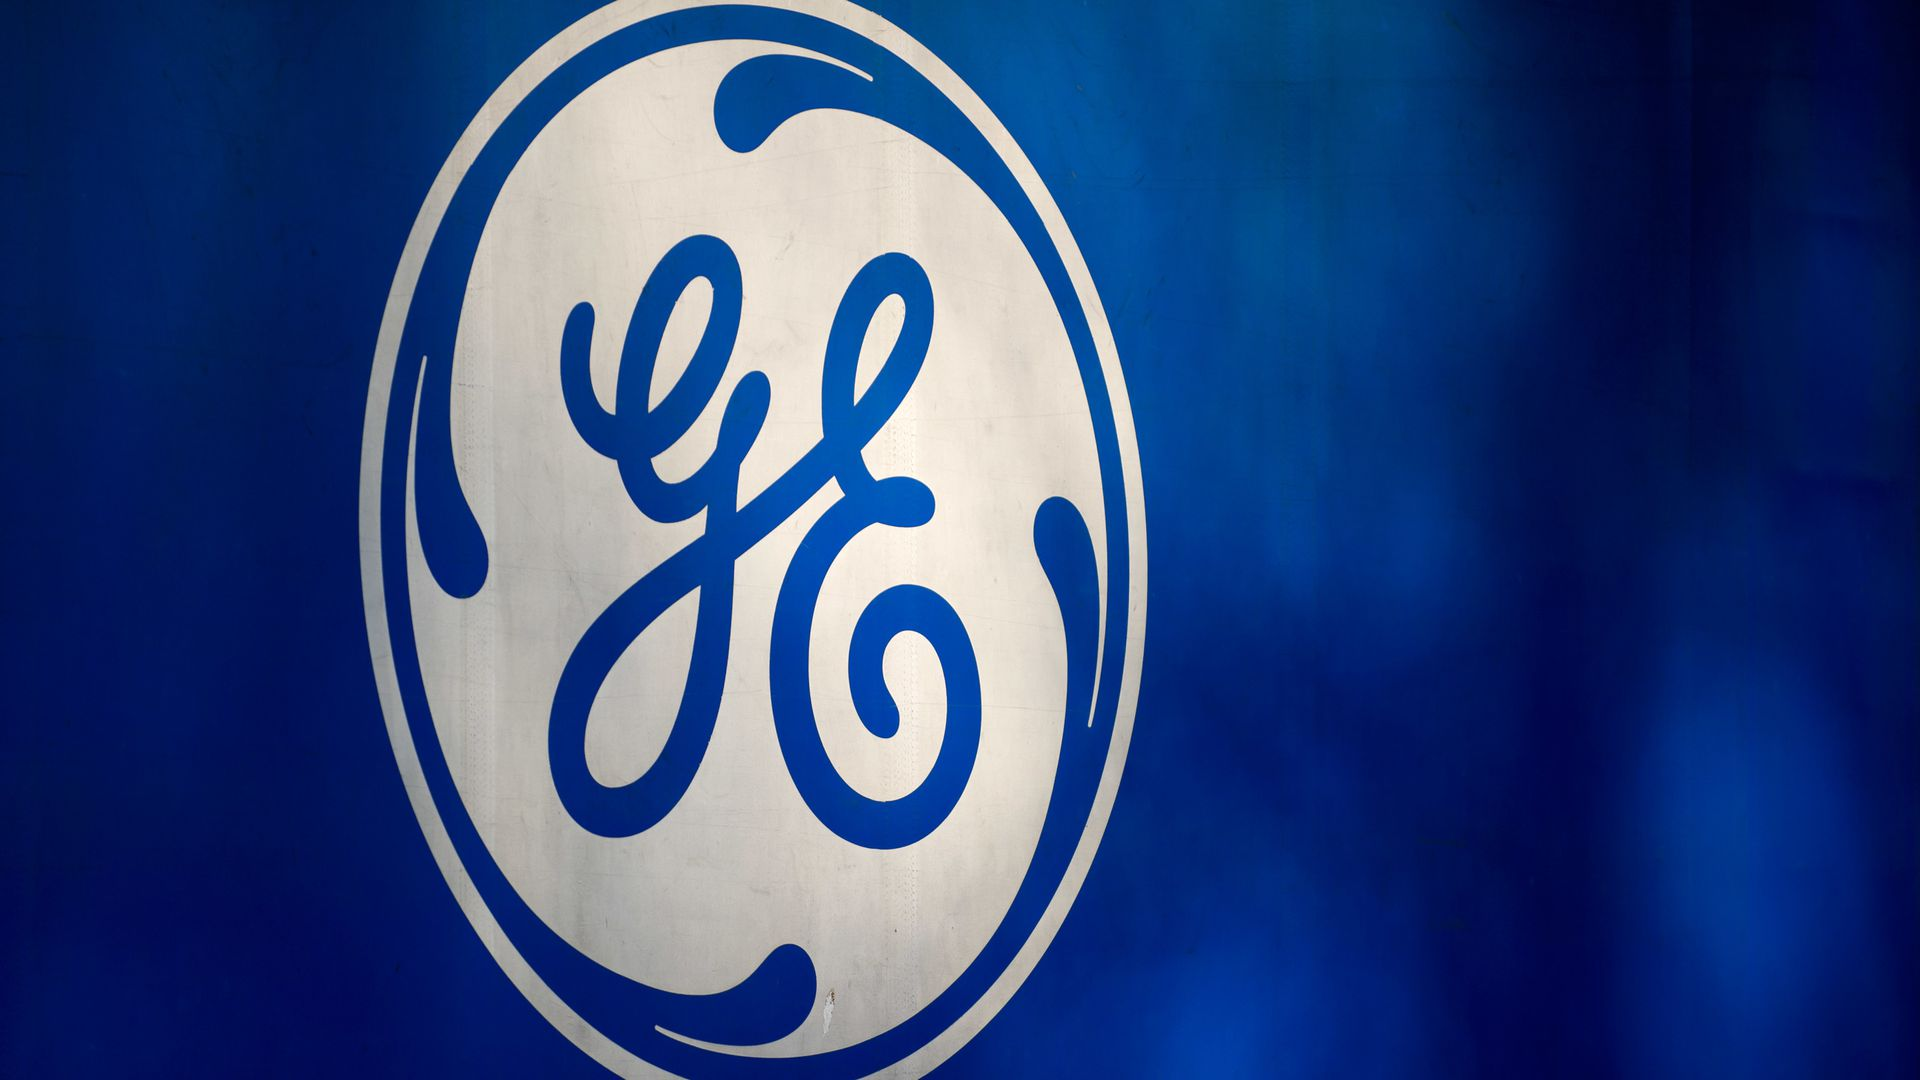 blue & white general electric logo